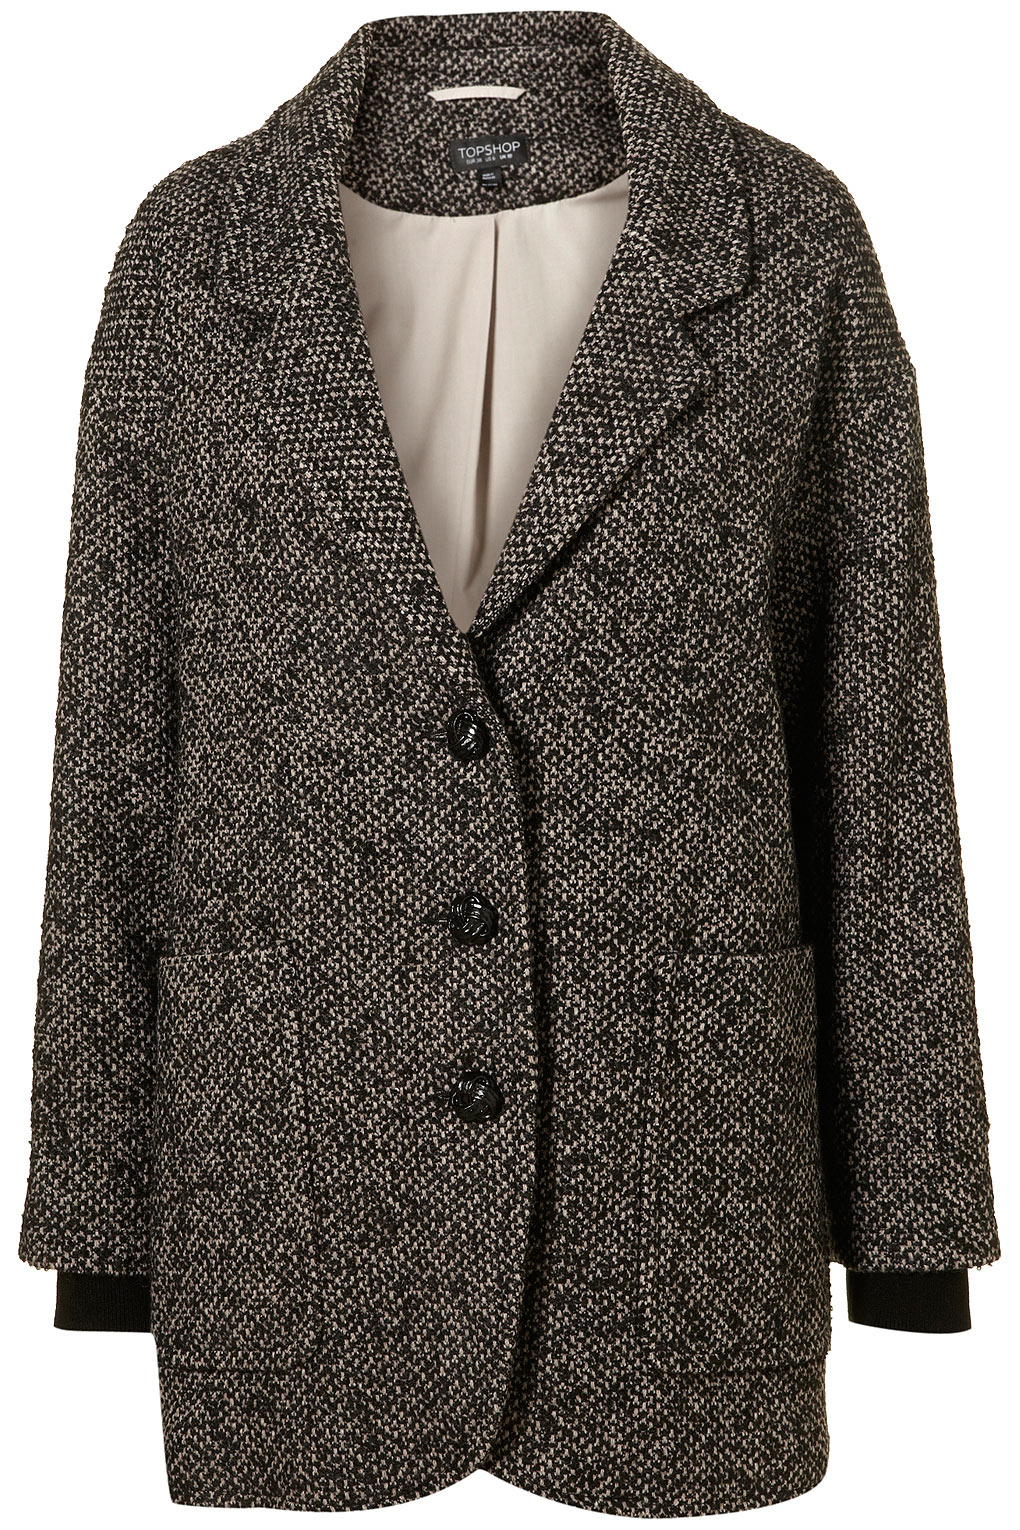 LOOKING FOR THE PERFECT TWEED BOYFRIEND COAT | BEINLA